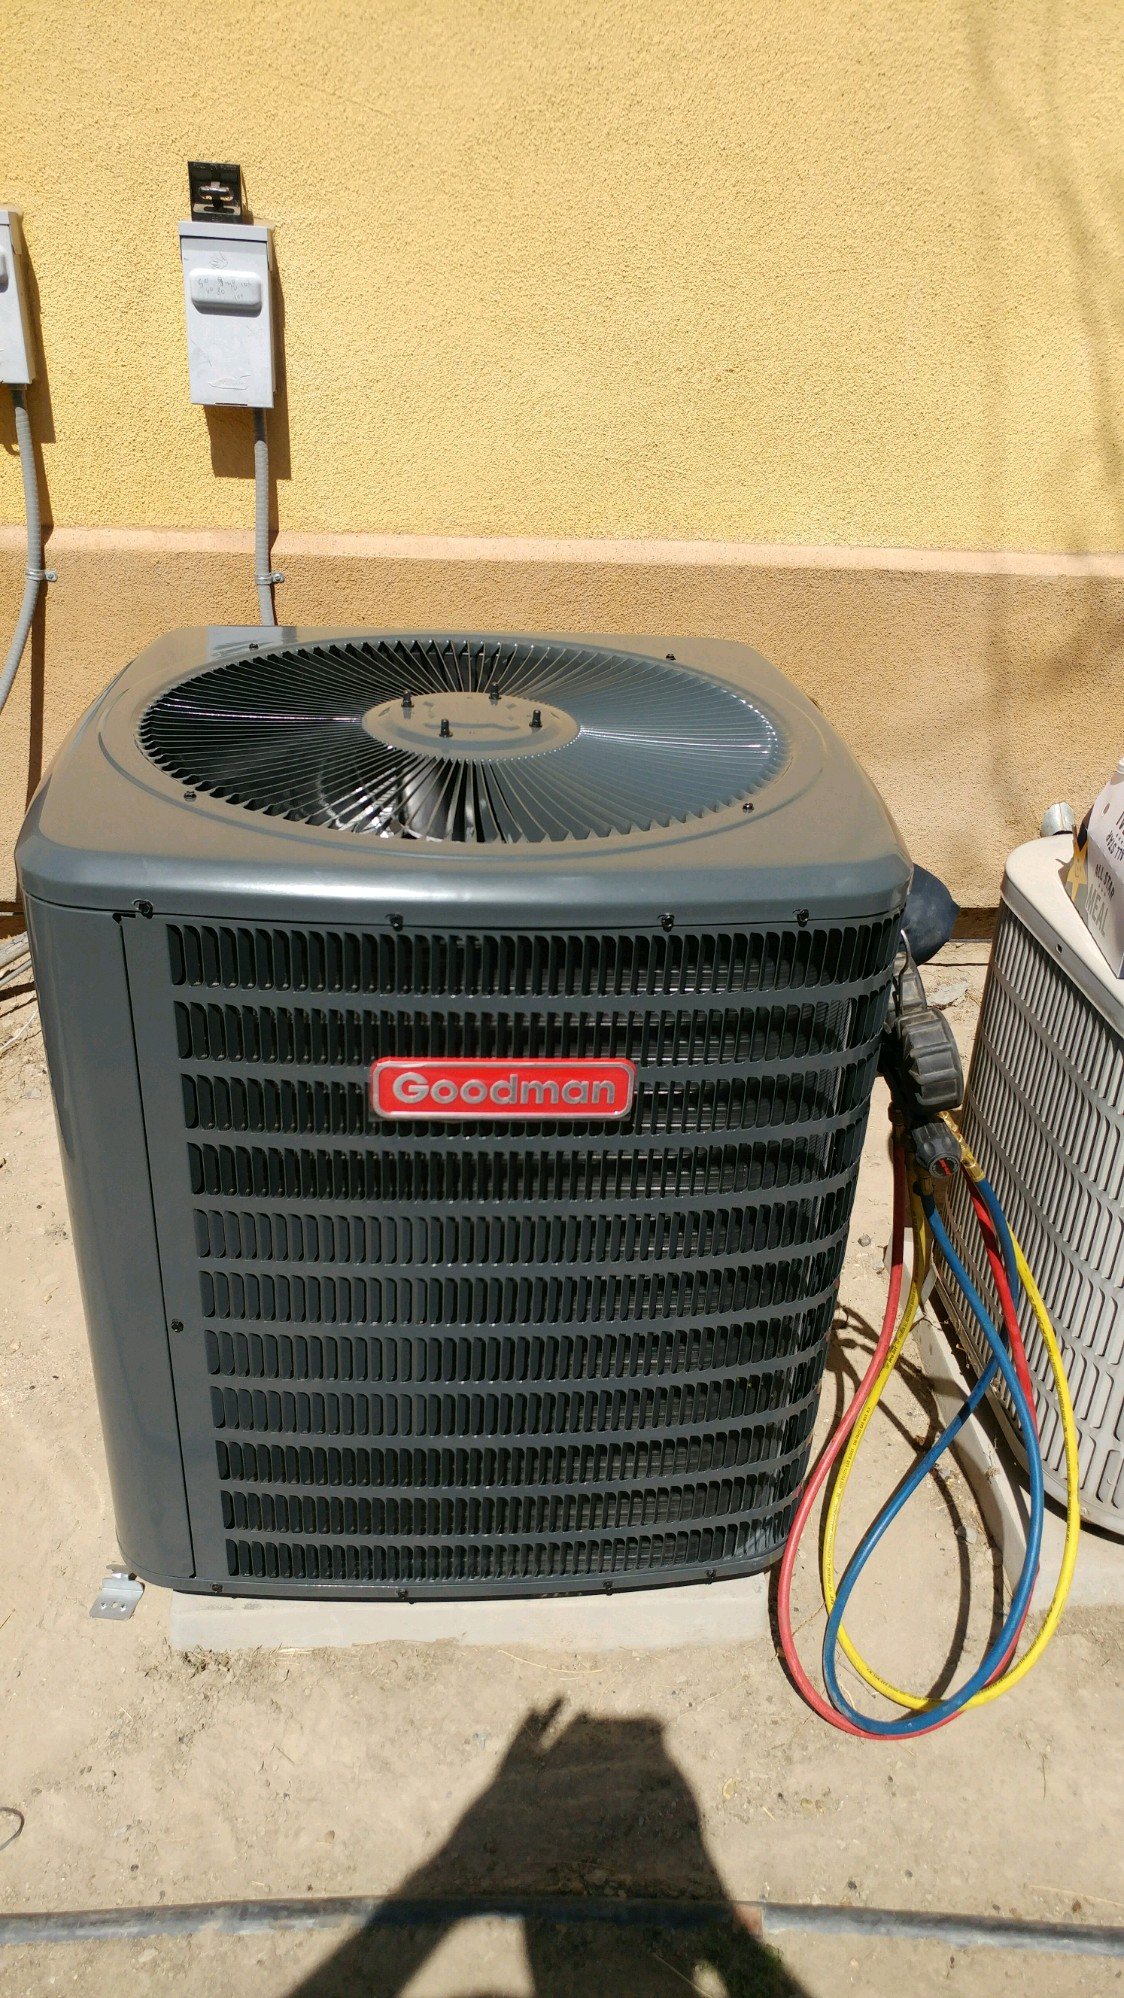 Aace's Heating, Air Conditioning image 34